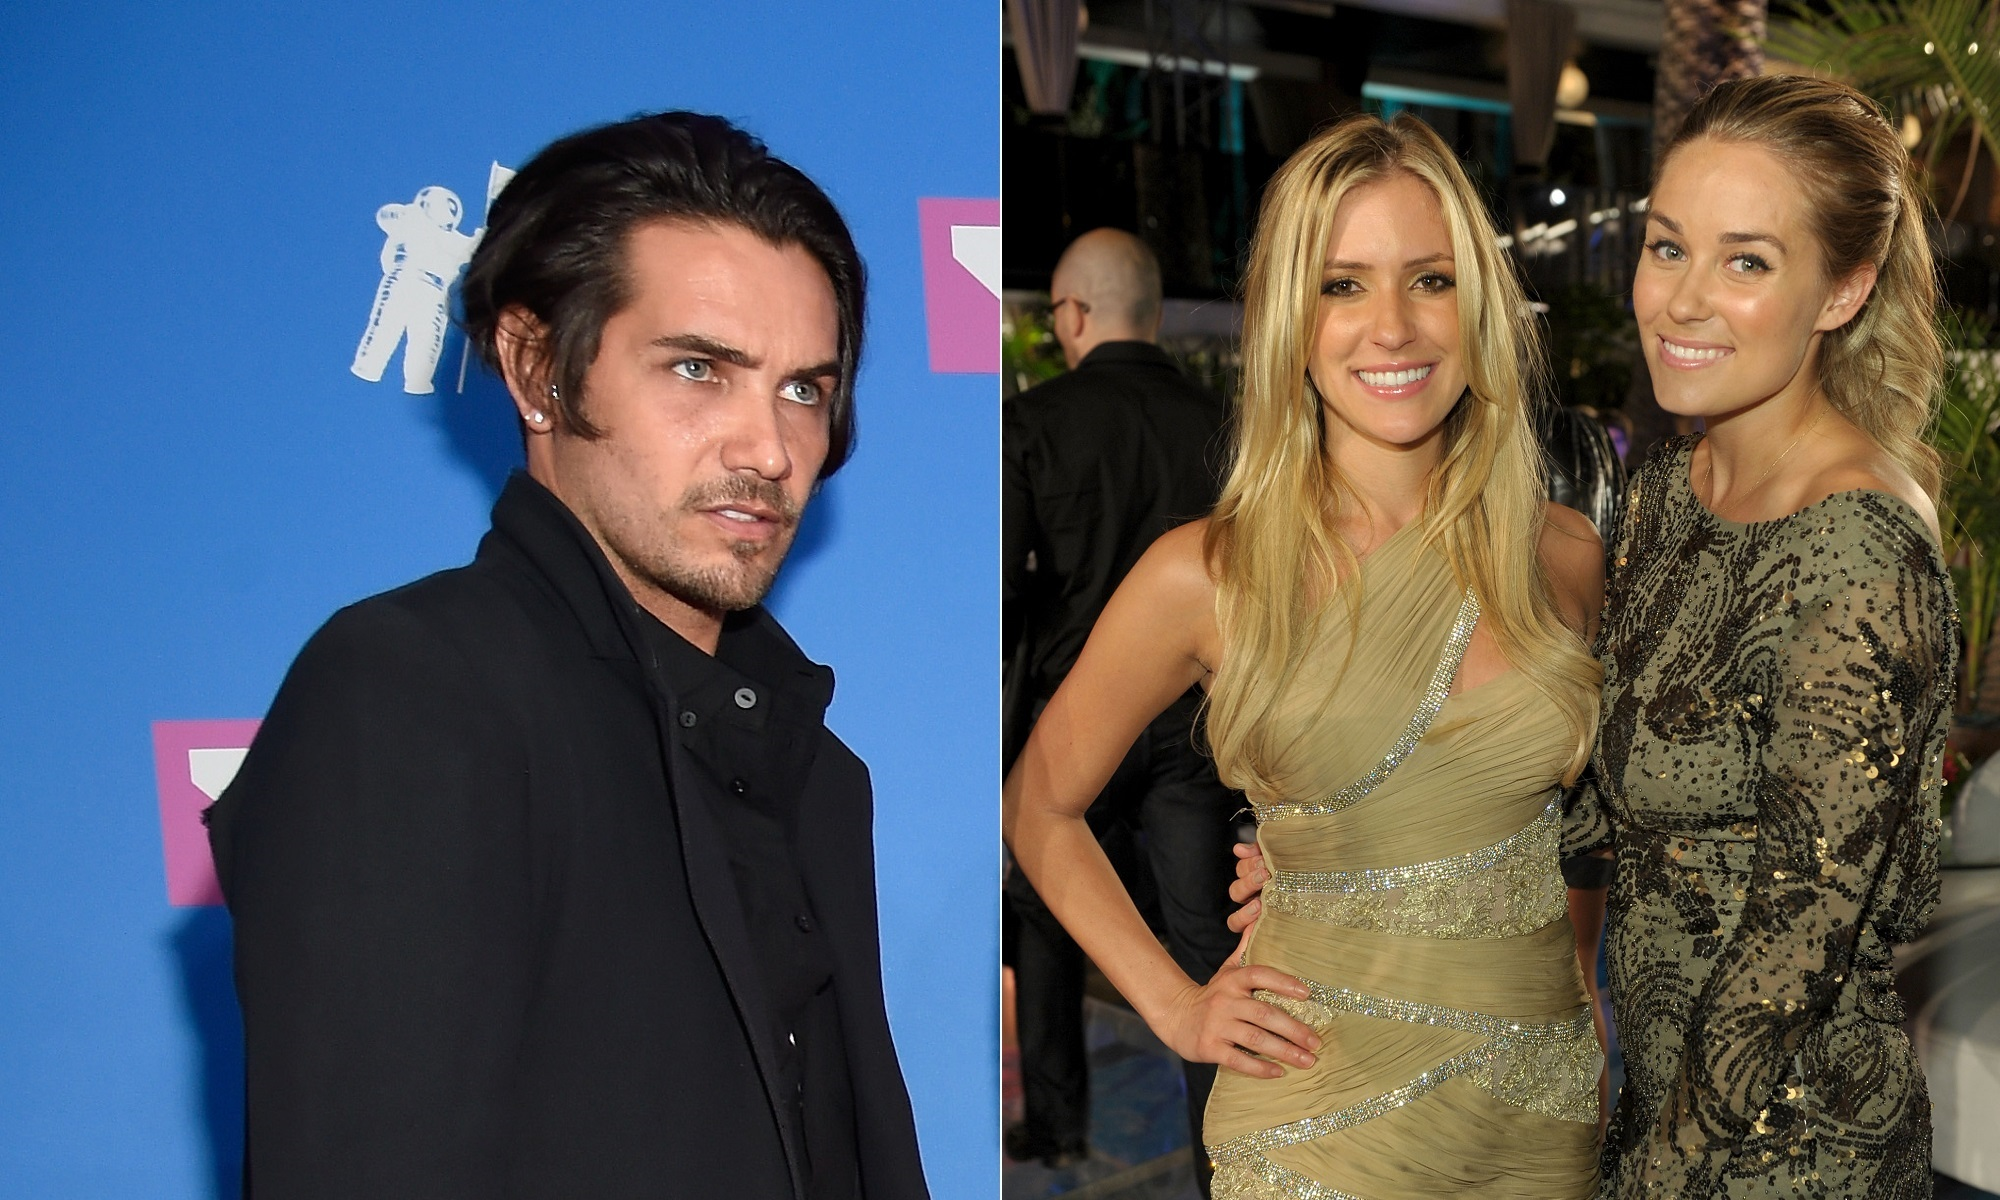 "In this composite pic, Justin Bobby Brescia, left, attends the 2018 MTV Video Music Awards at Radio City Music Hall in New York City on Aug. 20, 2018 and Kristin Cavallari and Lauren Conrad, right, attend MTV's ""The Hills Live: A Hollywood Ending"" finale event at The Hollywood Roosevelt Hotel on July 13, 2010."